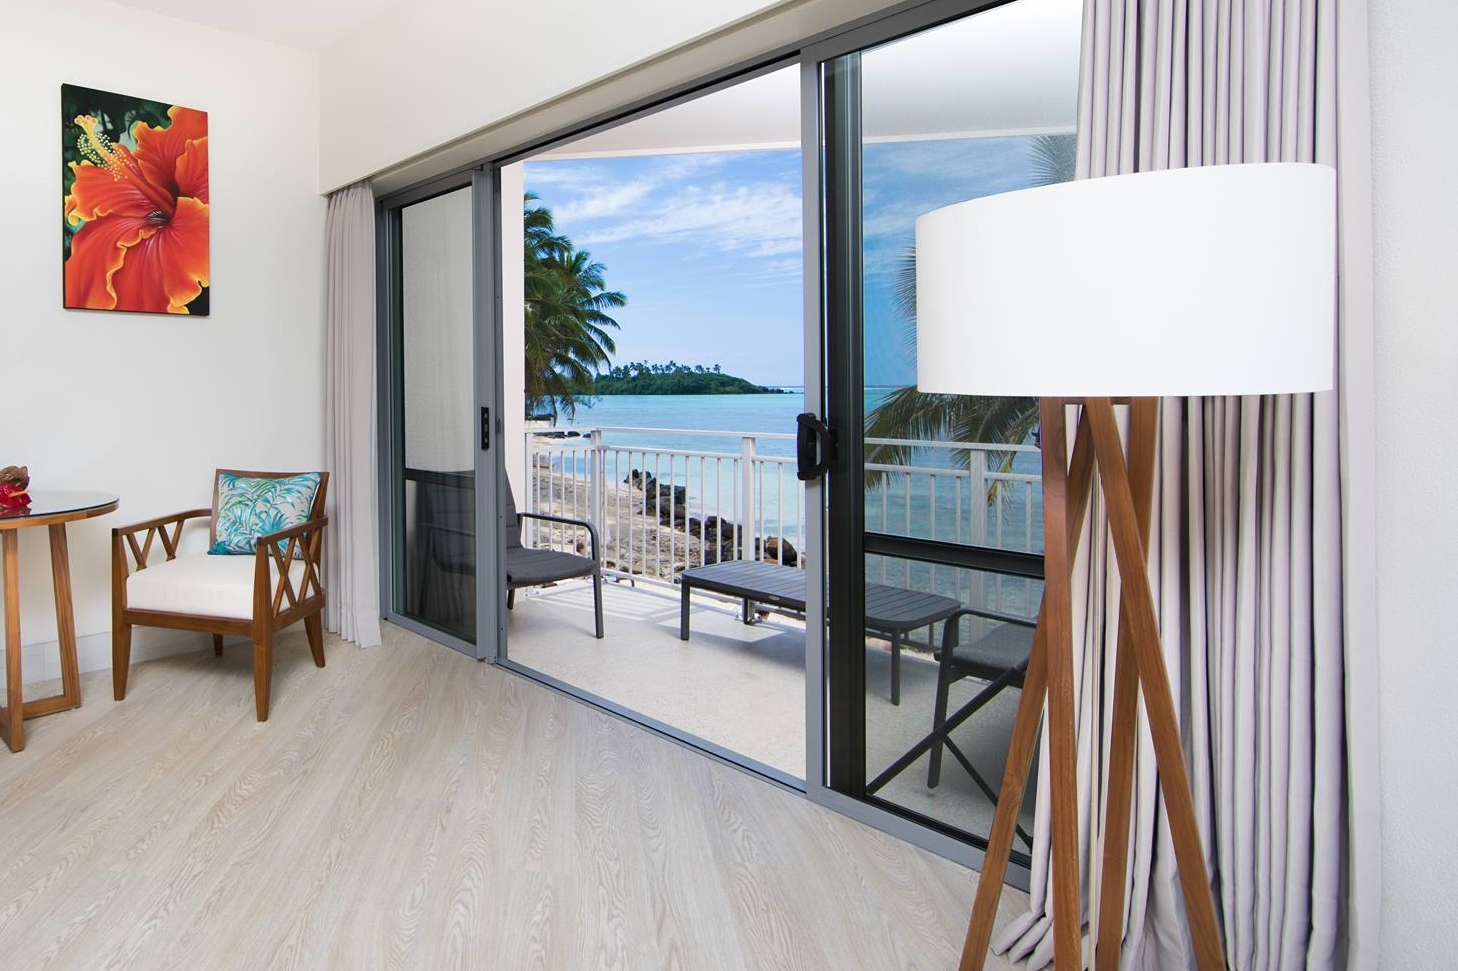 Moana Sands Lagoon Resort Commercial Outdoor Furniture